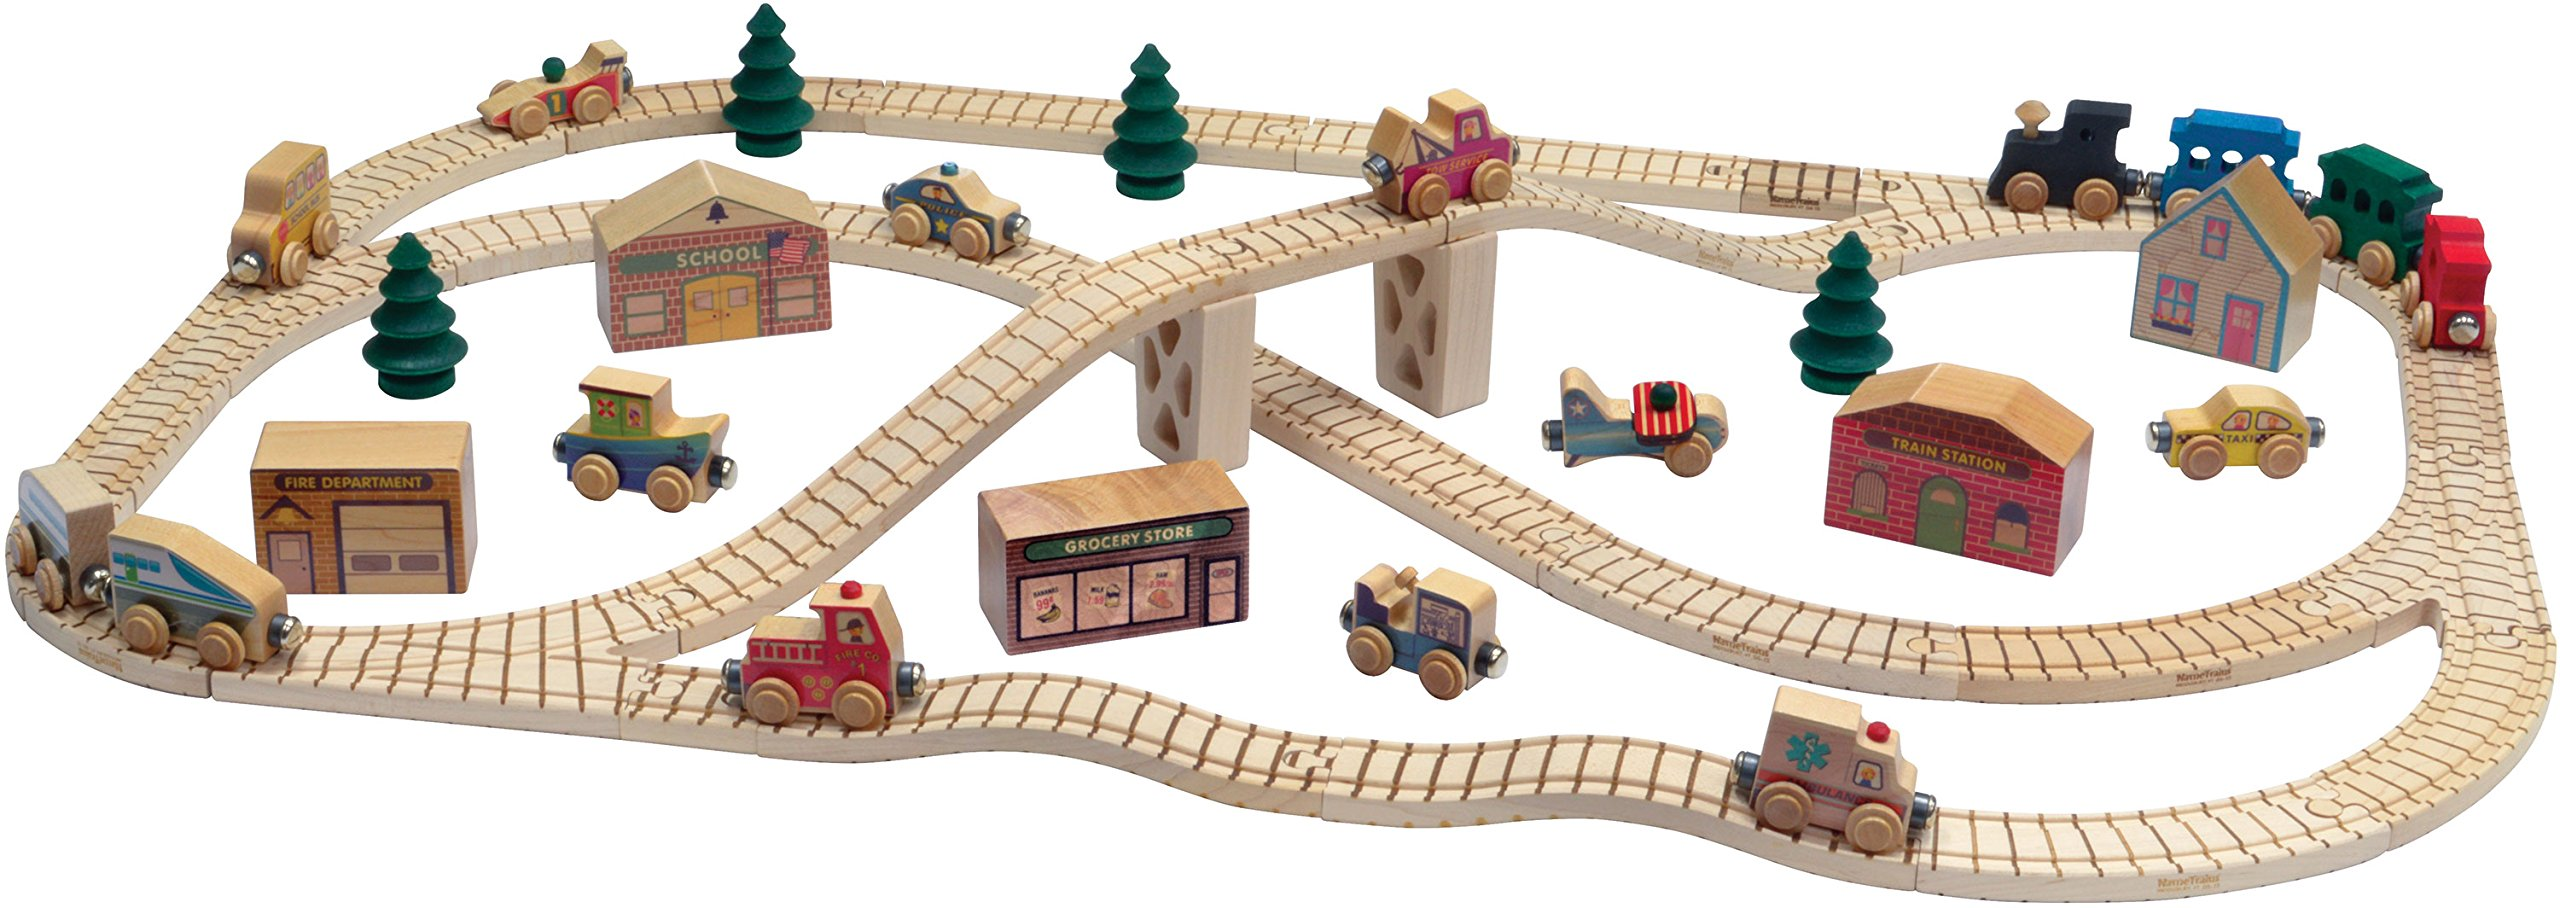 NameTrain Town Set - Made in USA